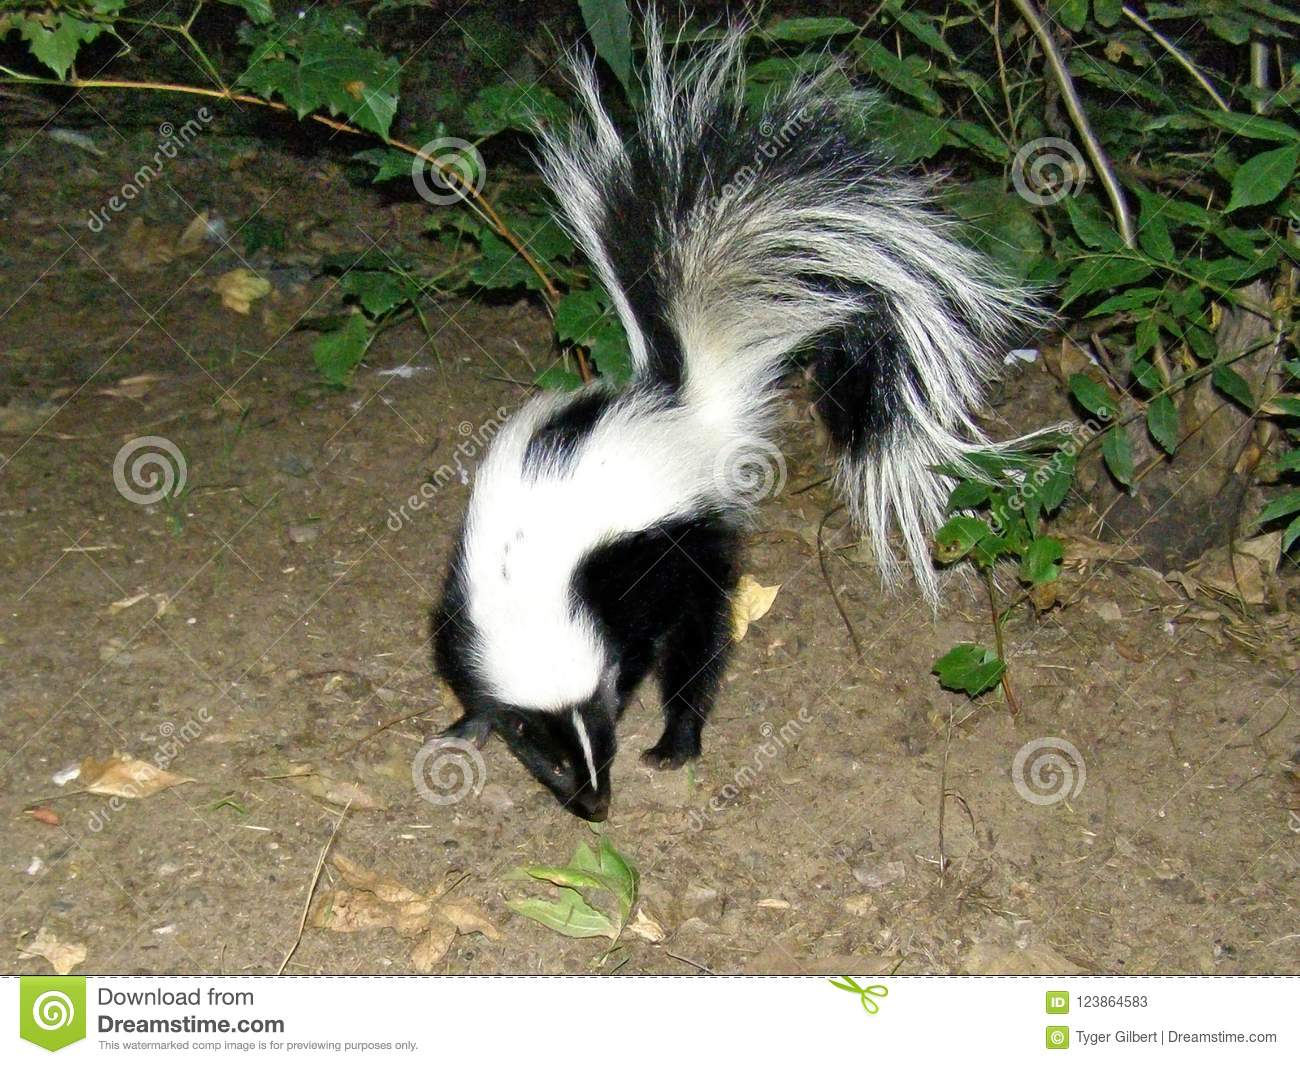 A Skunks Visits Camp in Oak Creek Canyon